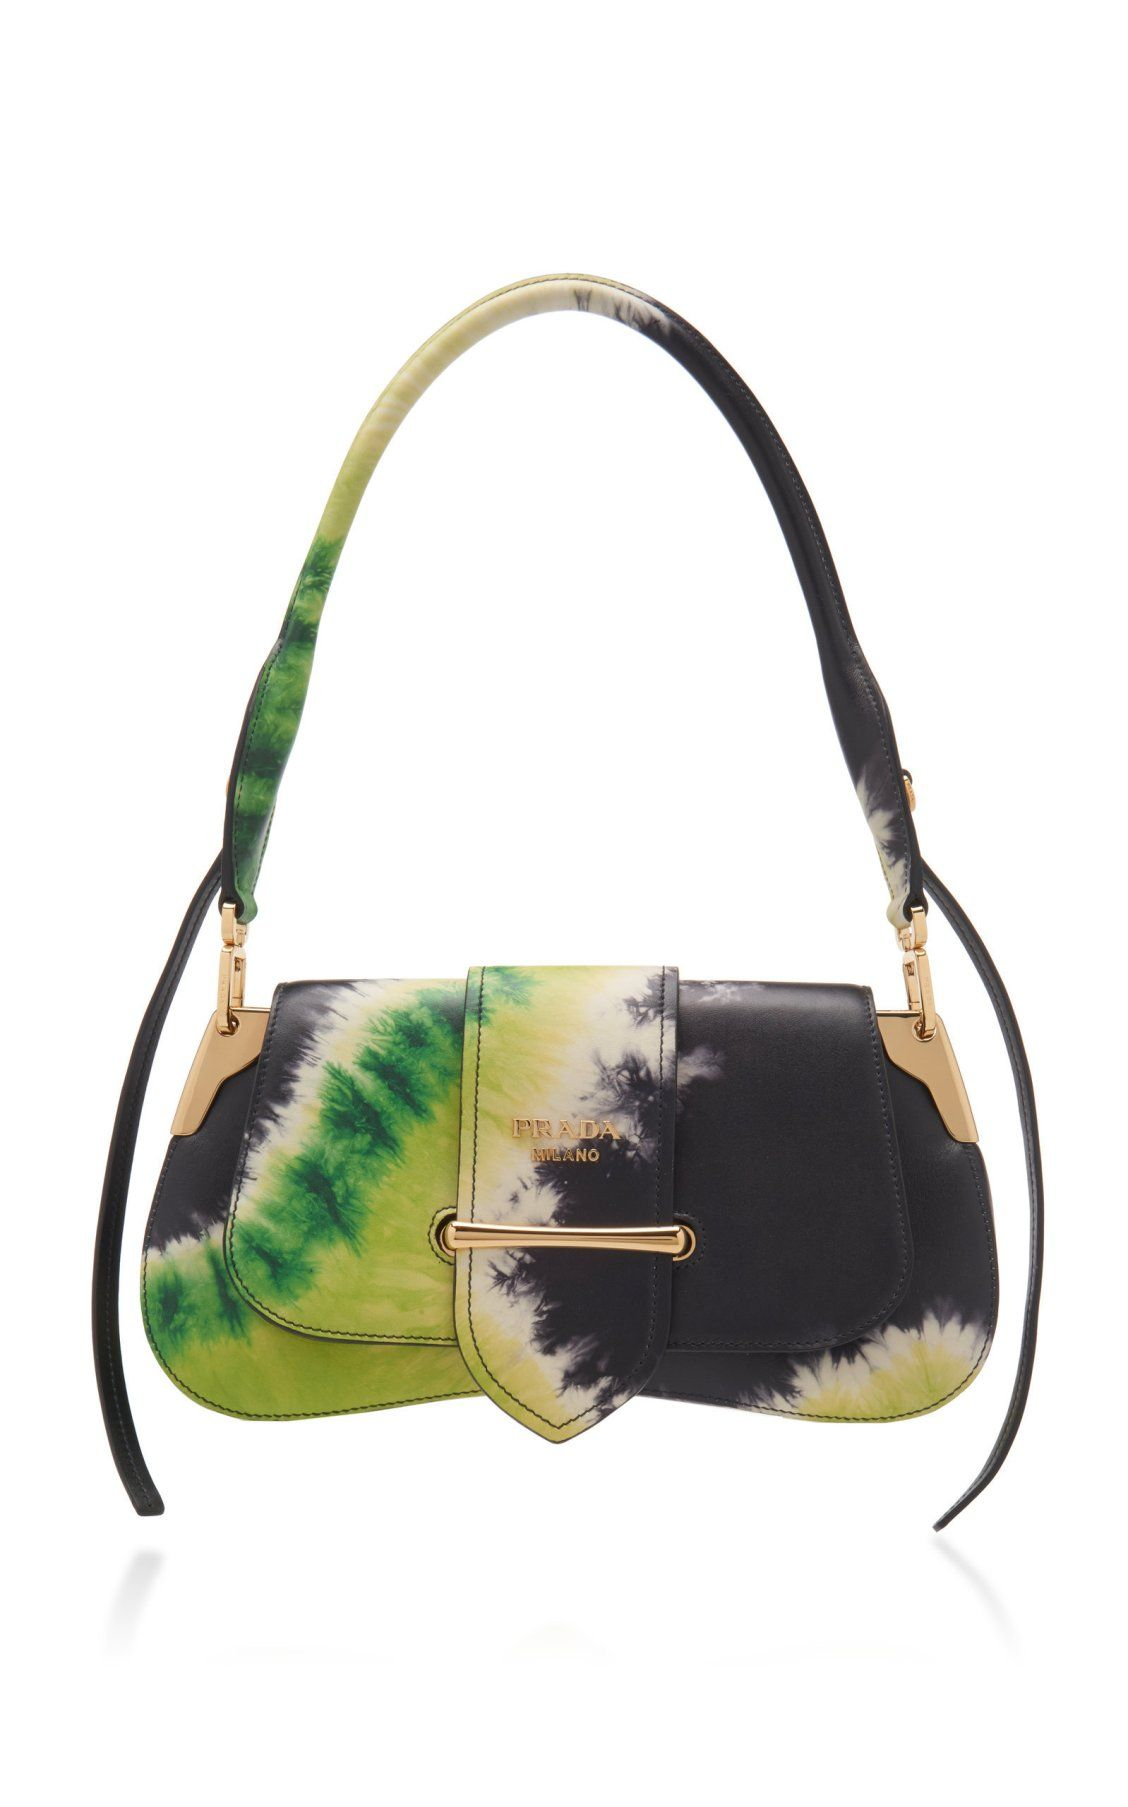 b6926c135cc522 Tie-Dye City Calf Pattina Bag by Prada Spring/Summer 2019 | Moda Operandi